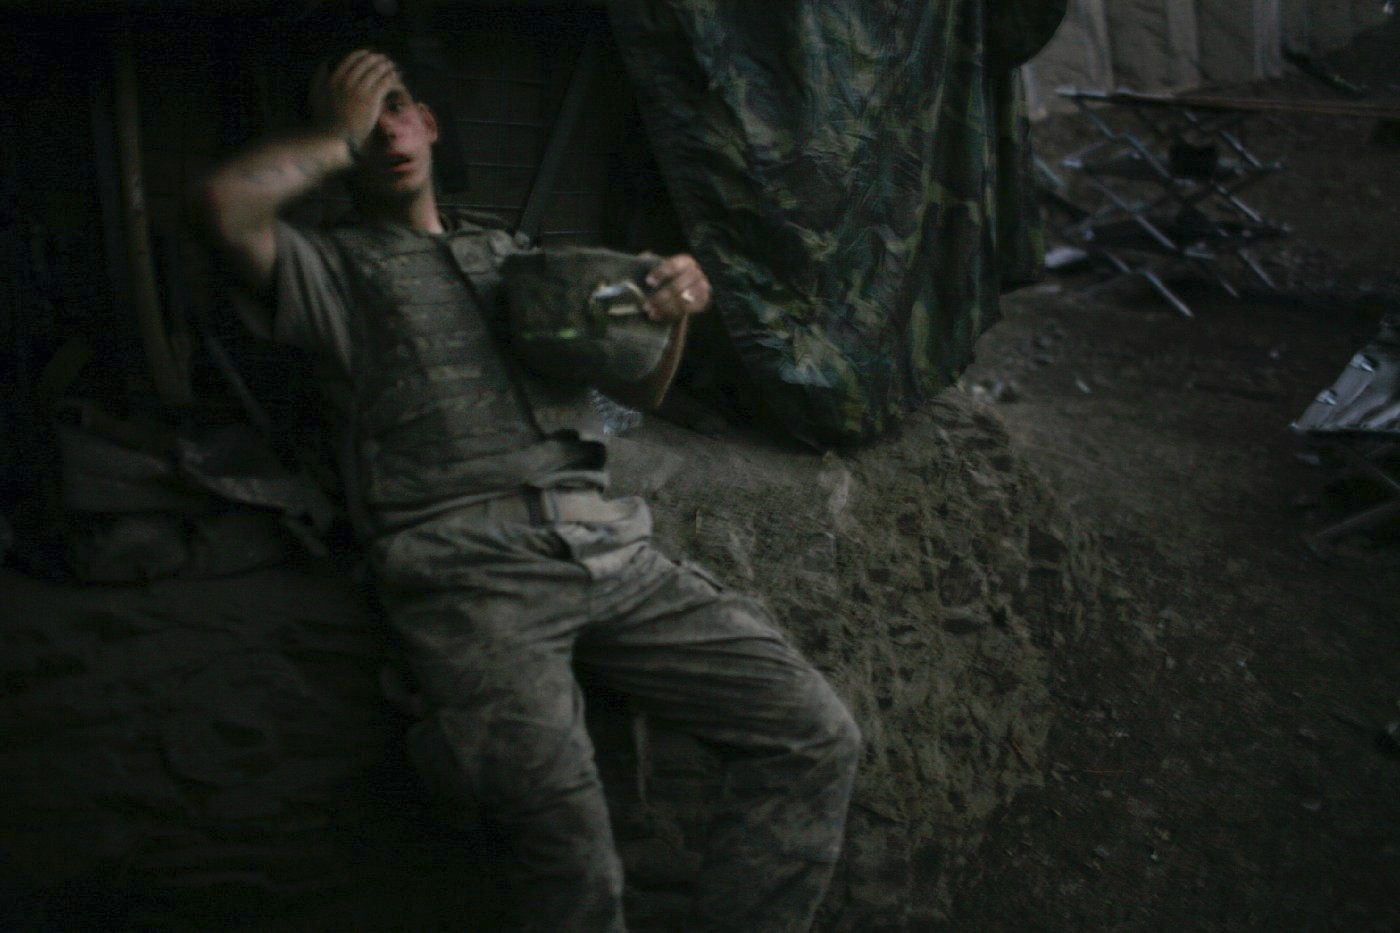 World Press Photo of the Year 2007 by Tim Hetherington shows an exhausted soldier in Afghanistan.